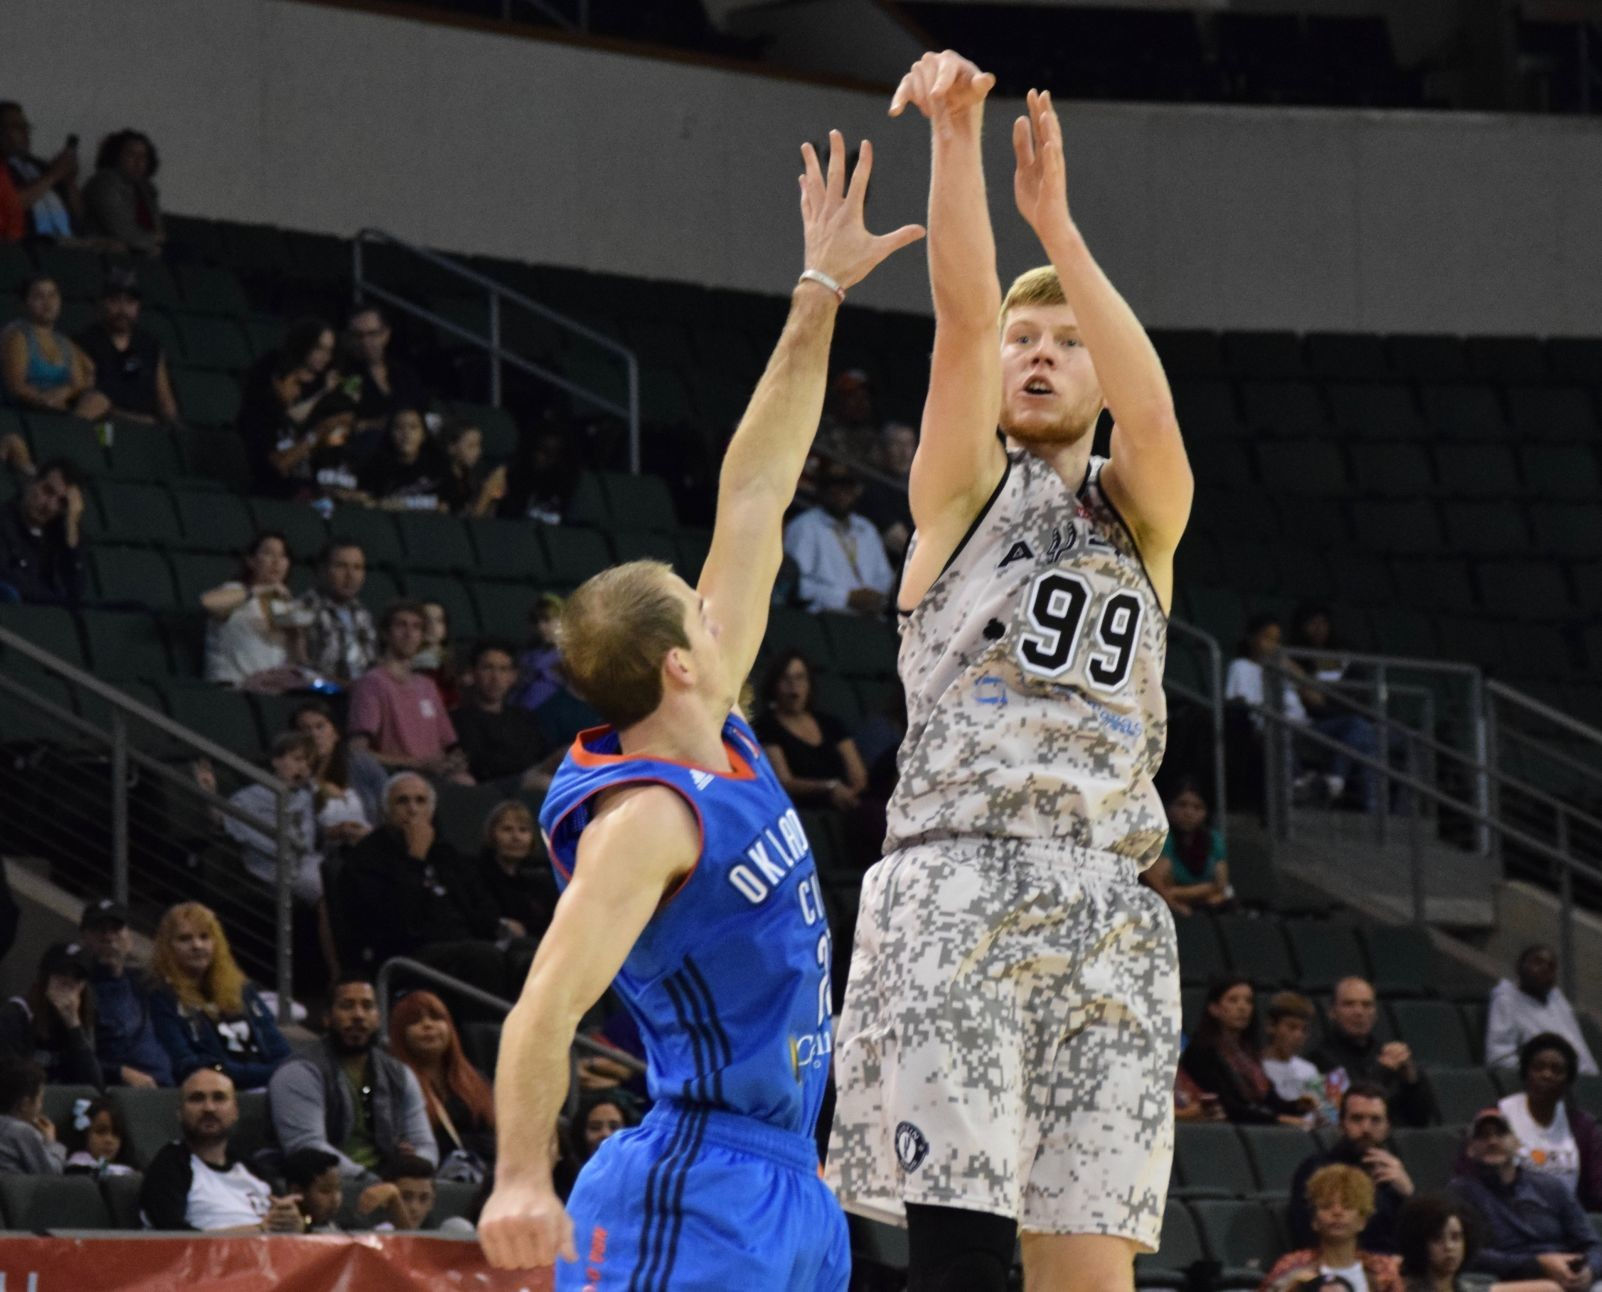 Davis Bertrans scored 22 points on six 3-pointers with to lead the Austin Spurs in their 118-95 loss to the Oklahoma City Blue Saturday night.